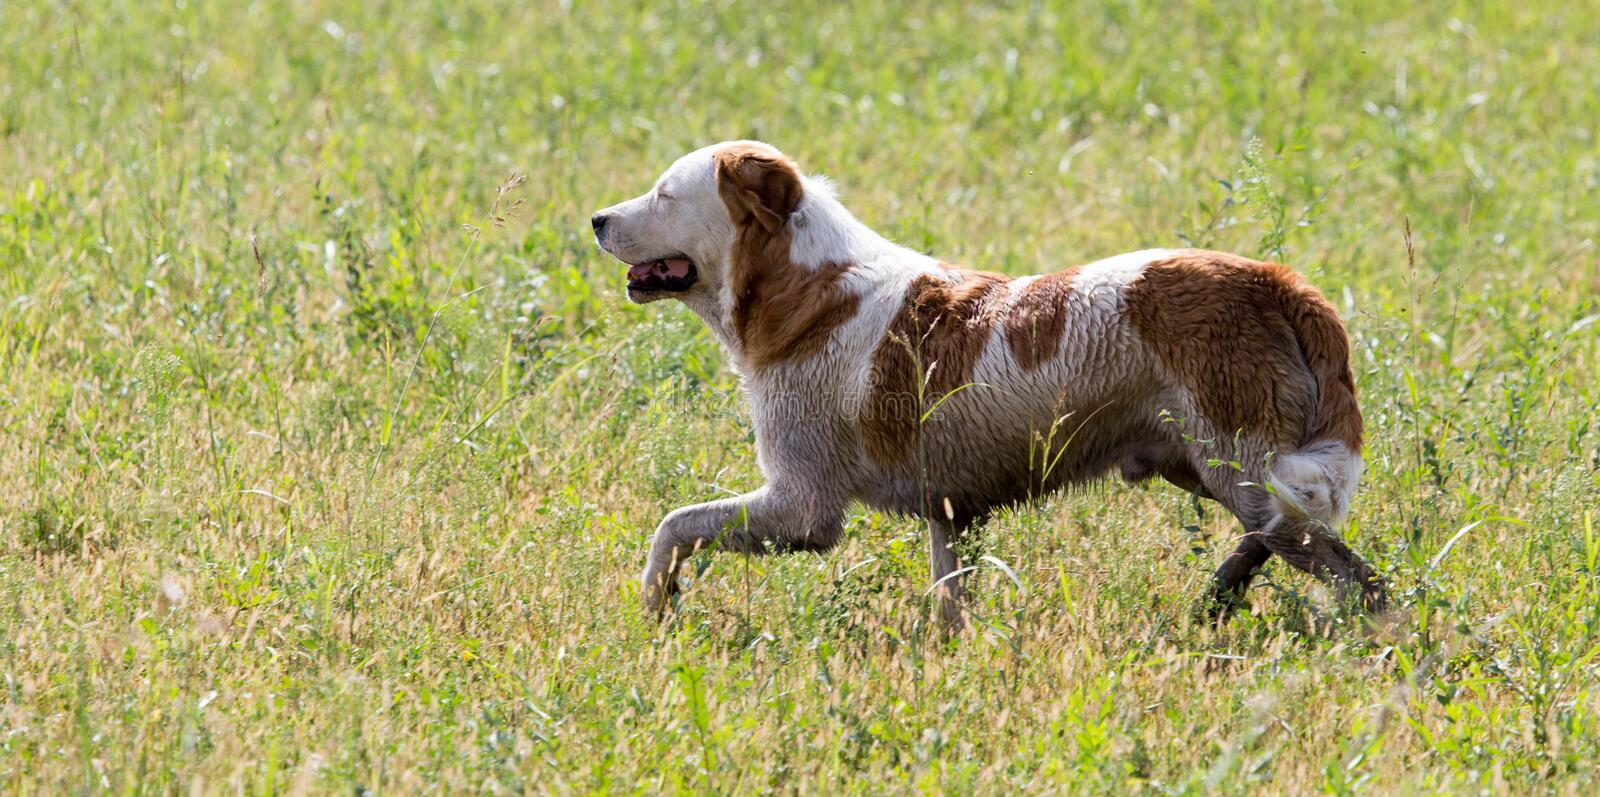 Dog running on grass outdoors royalty free stock images